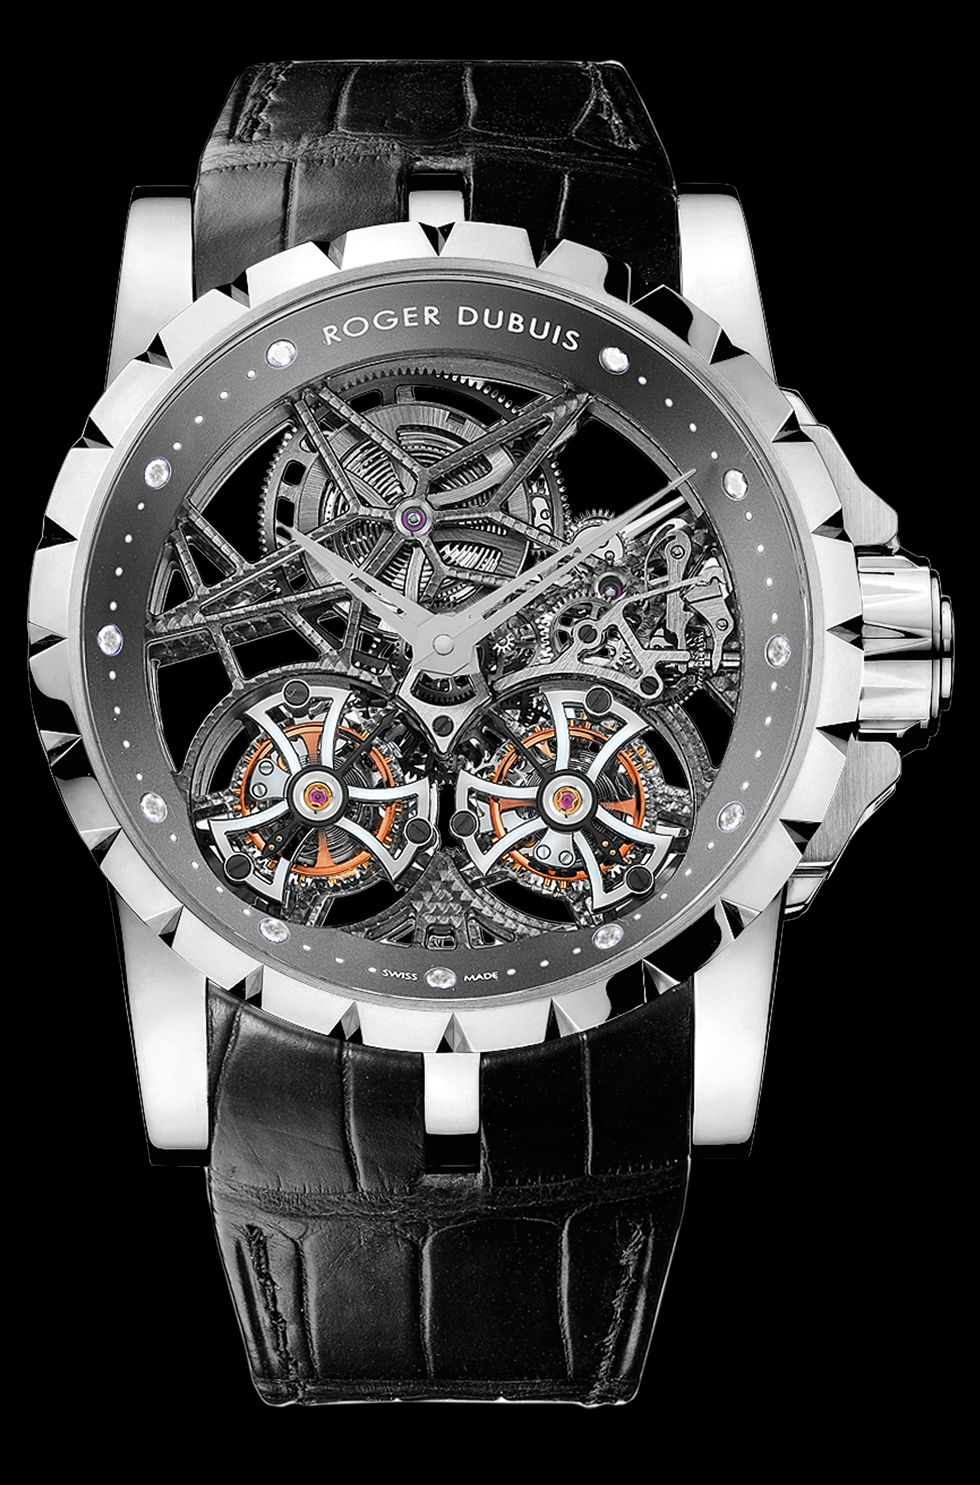 Roger Dubois Excalibur Skeleton Double Flying Tourbillon Watch